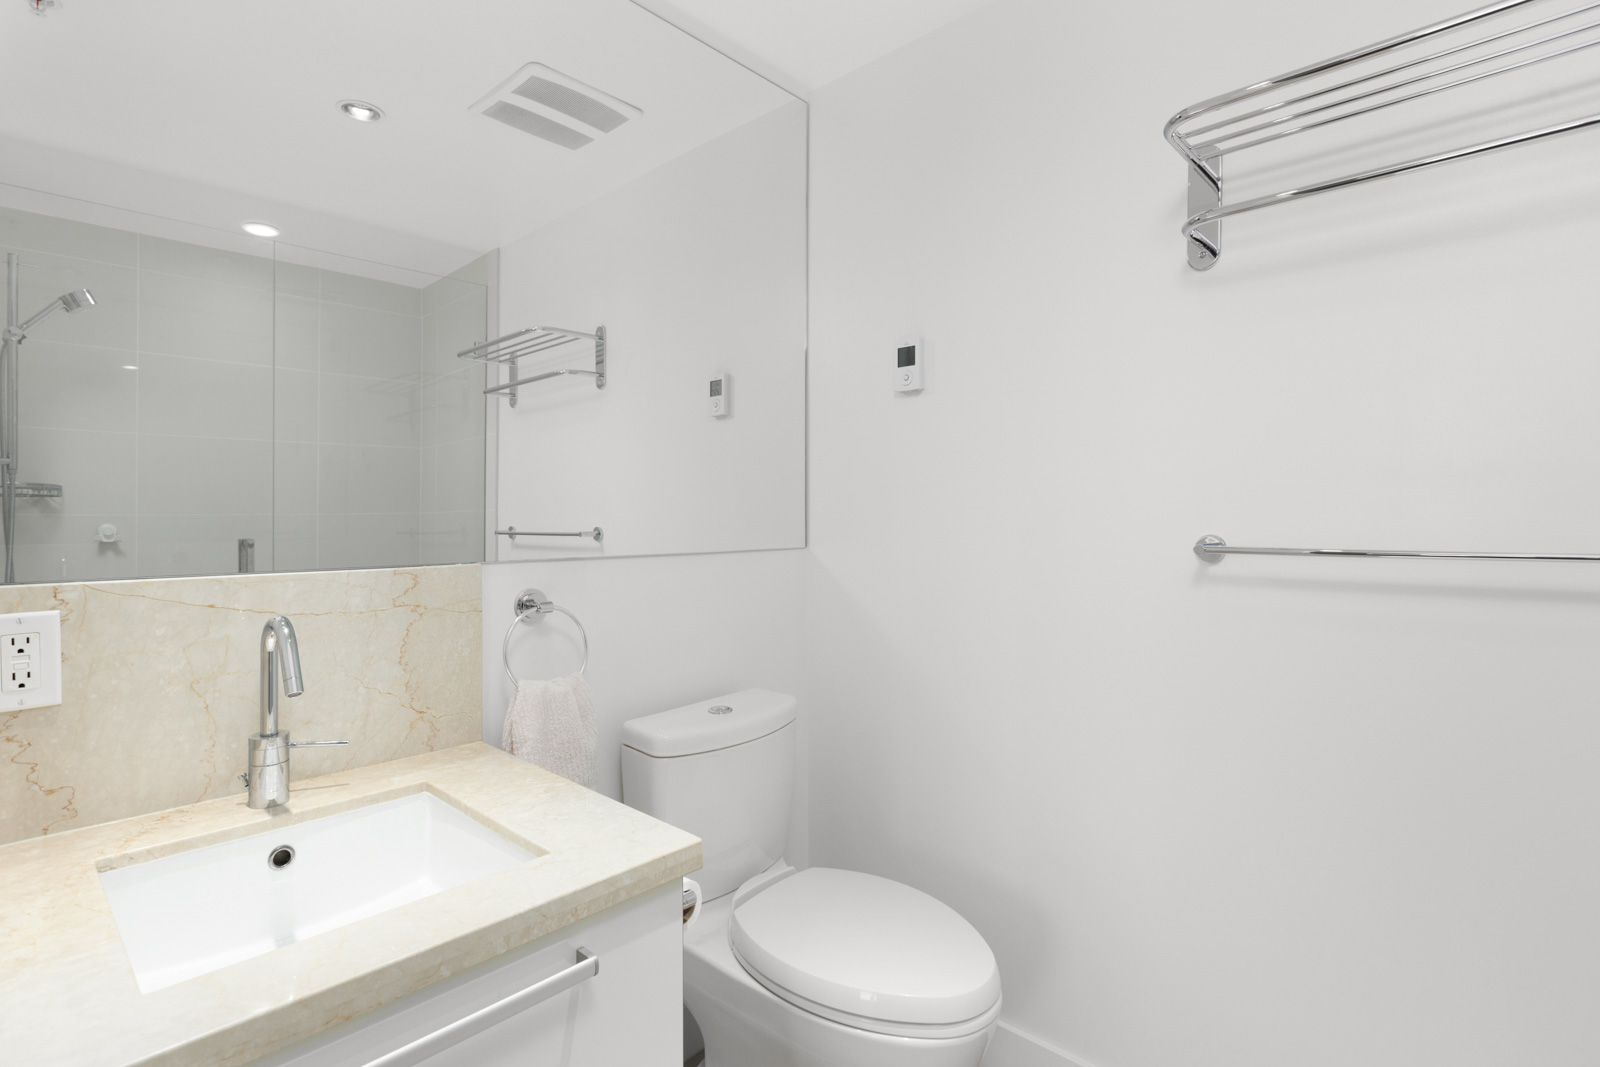 white bathroom with vanity sink and mirror on left toilet in the middle and white wall on right with high towel rack